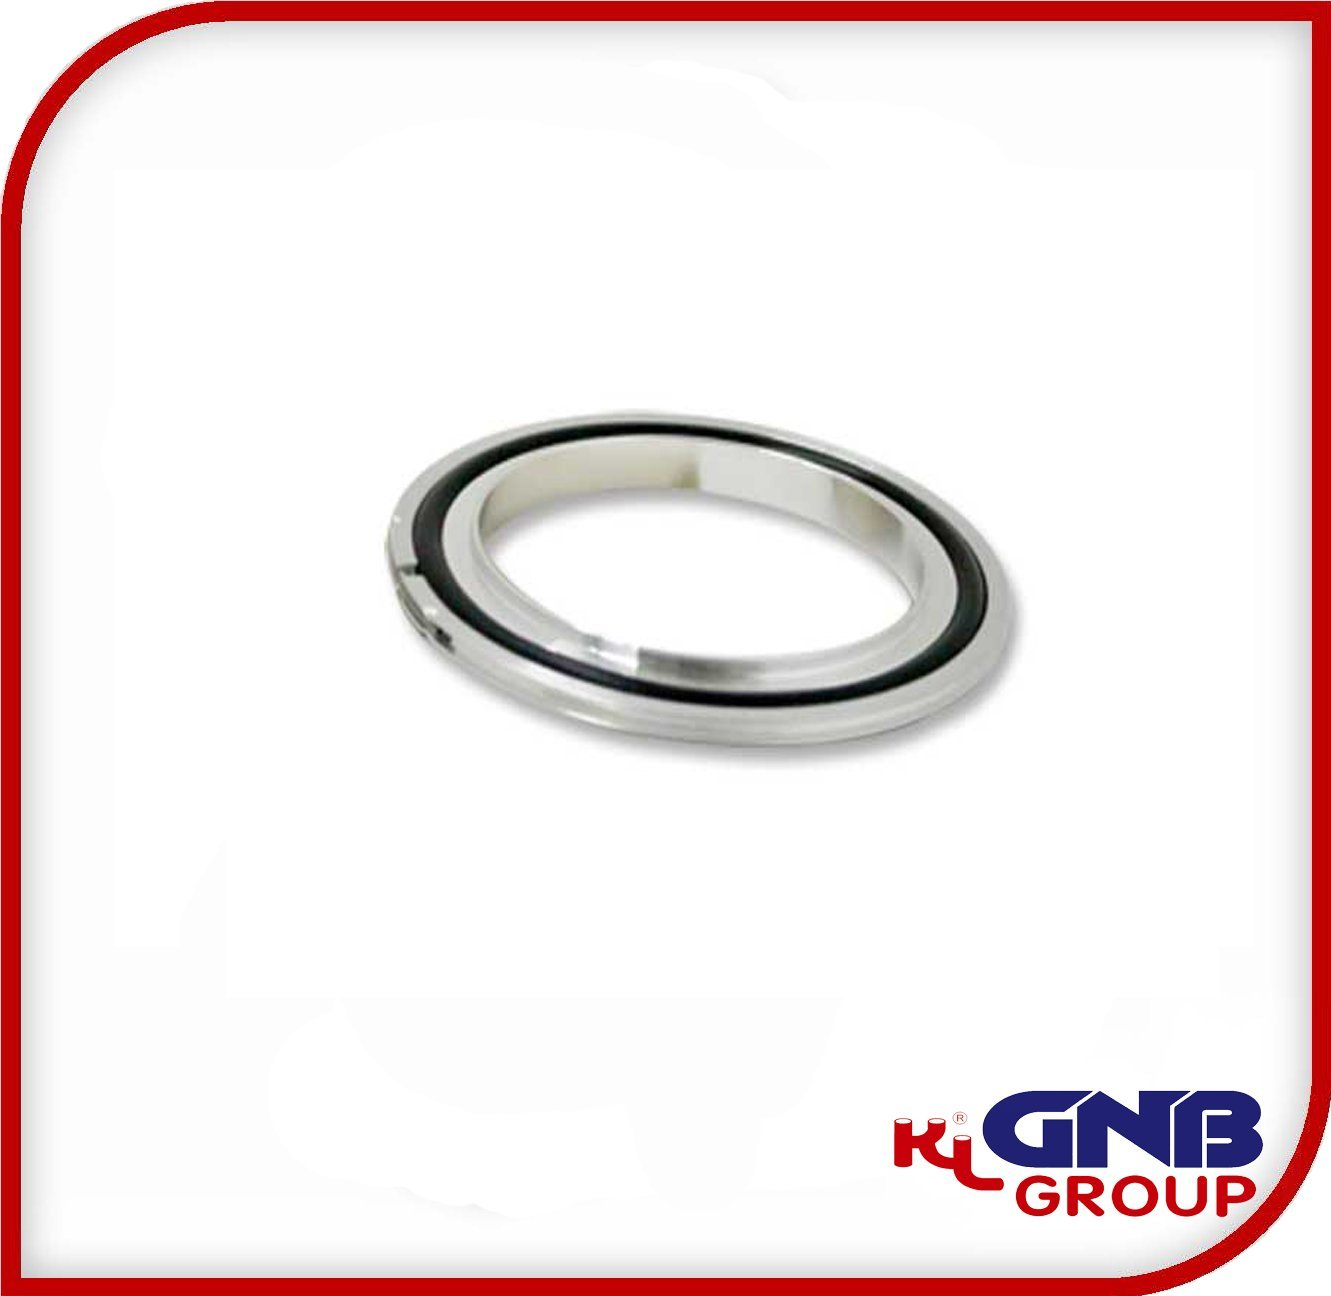 ISO Centering Rings with O-Rings and Spacers GNB KL Group